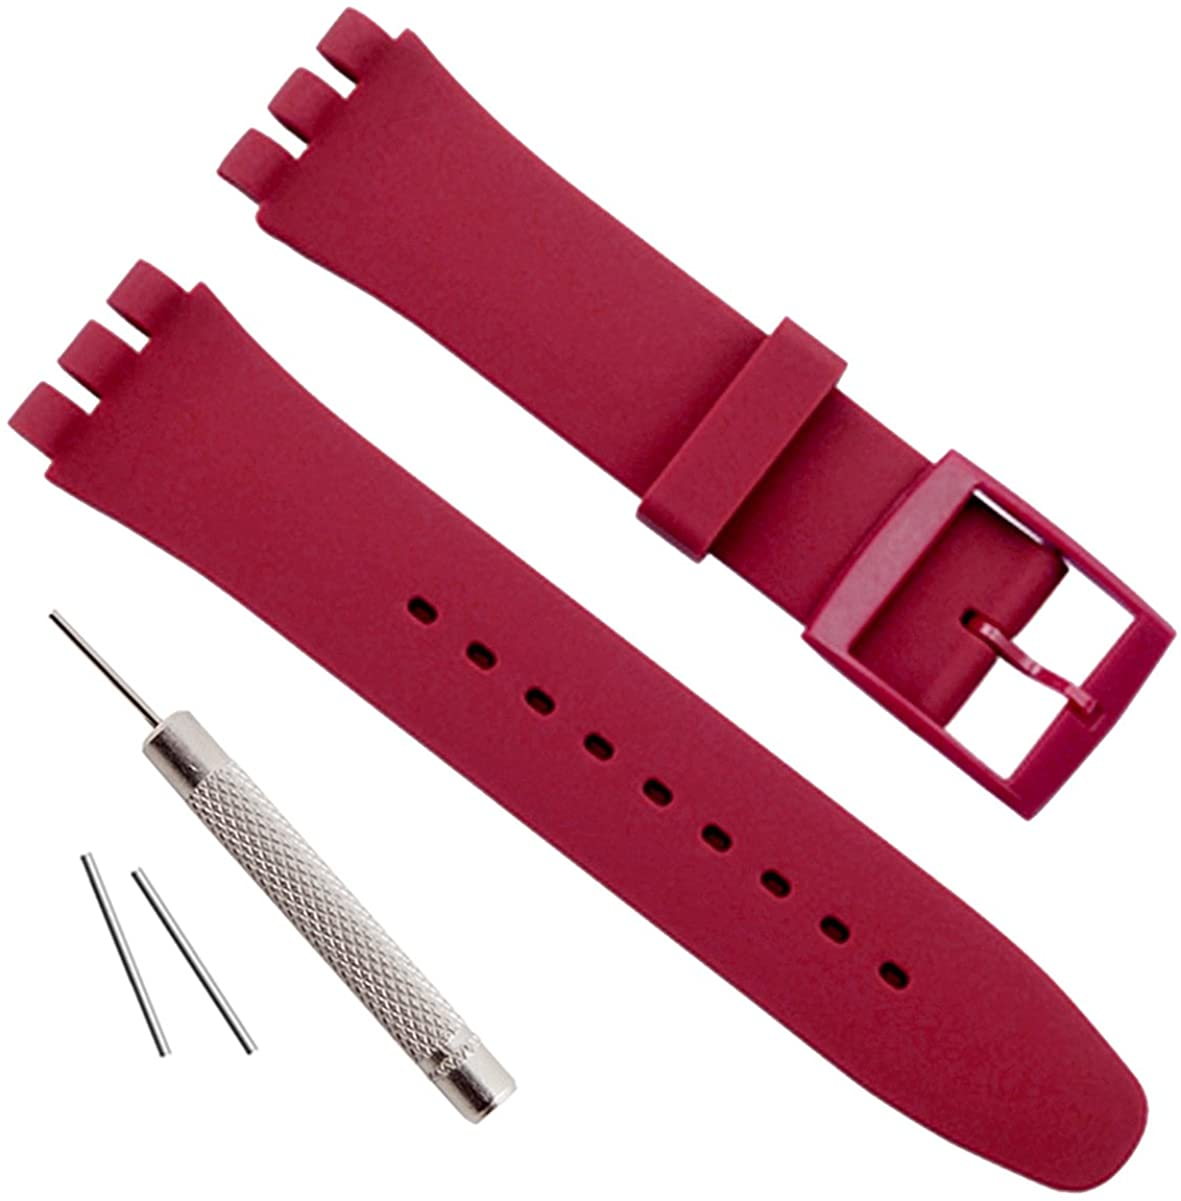 OliBoPo Replacement Waterproof Silicone Rubber Watch Strap Watch Band for Swatch (17mm 19mm 20mm) (19mm, Dark Red)